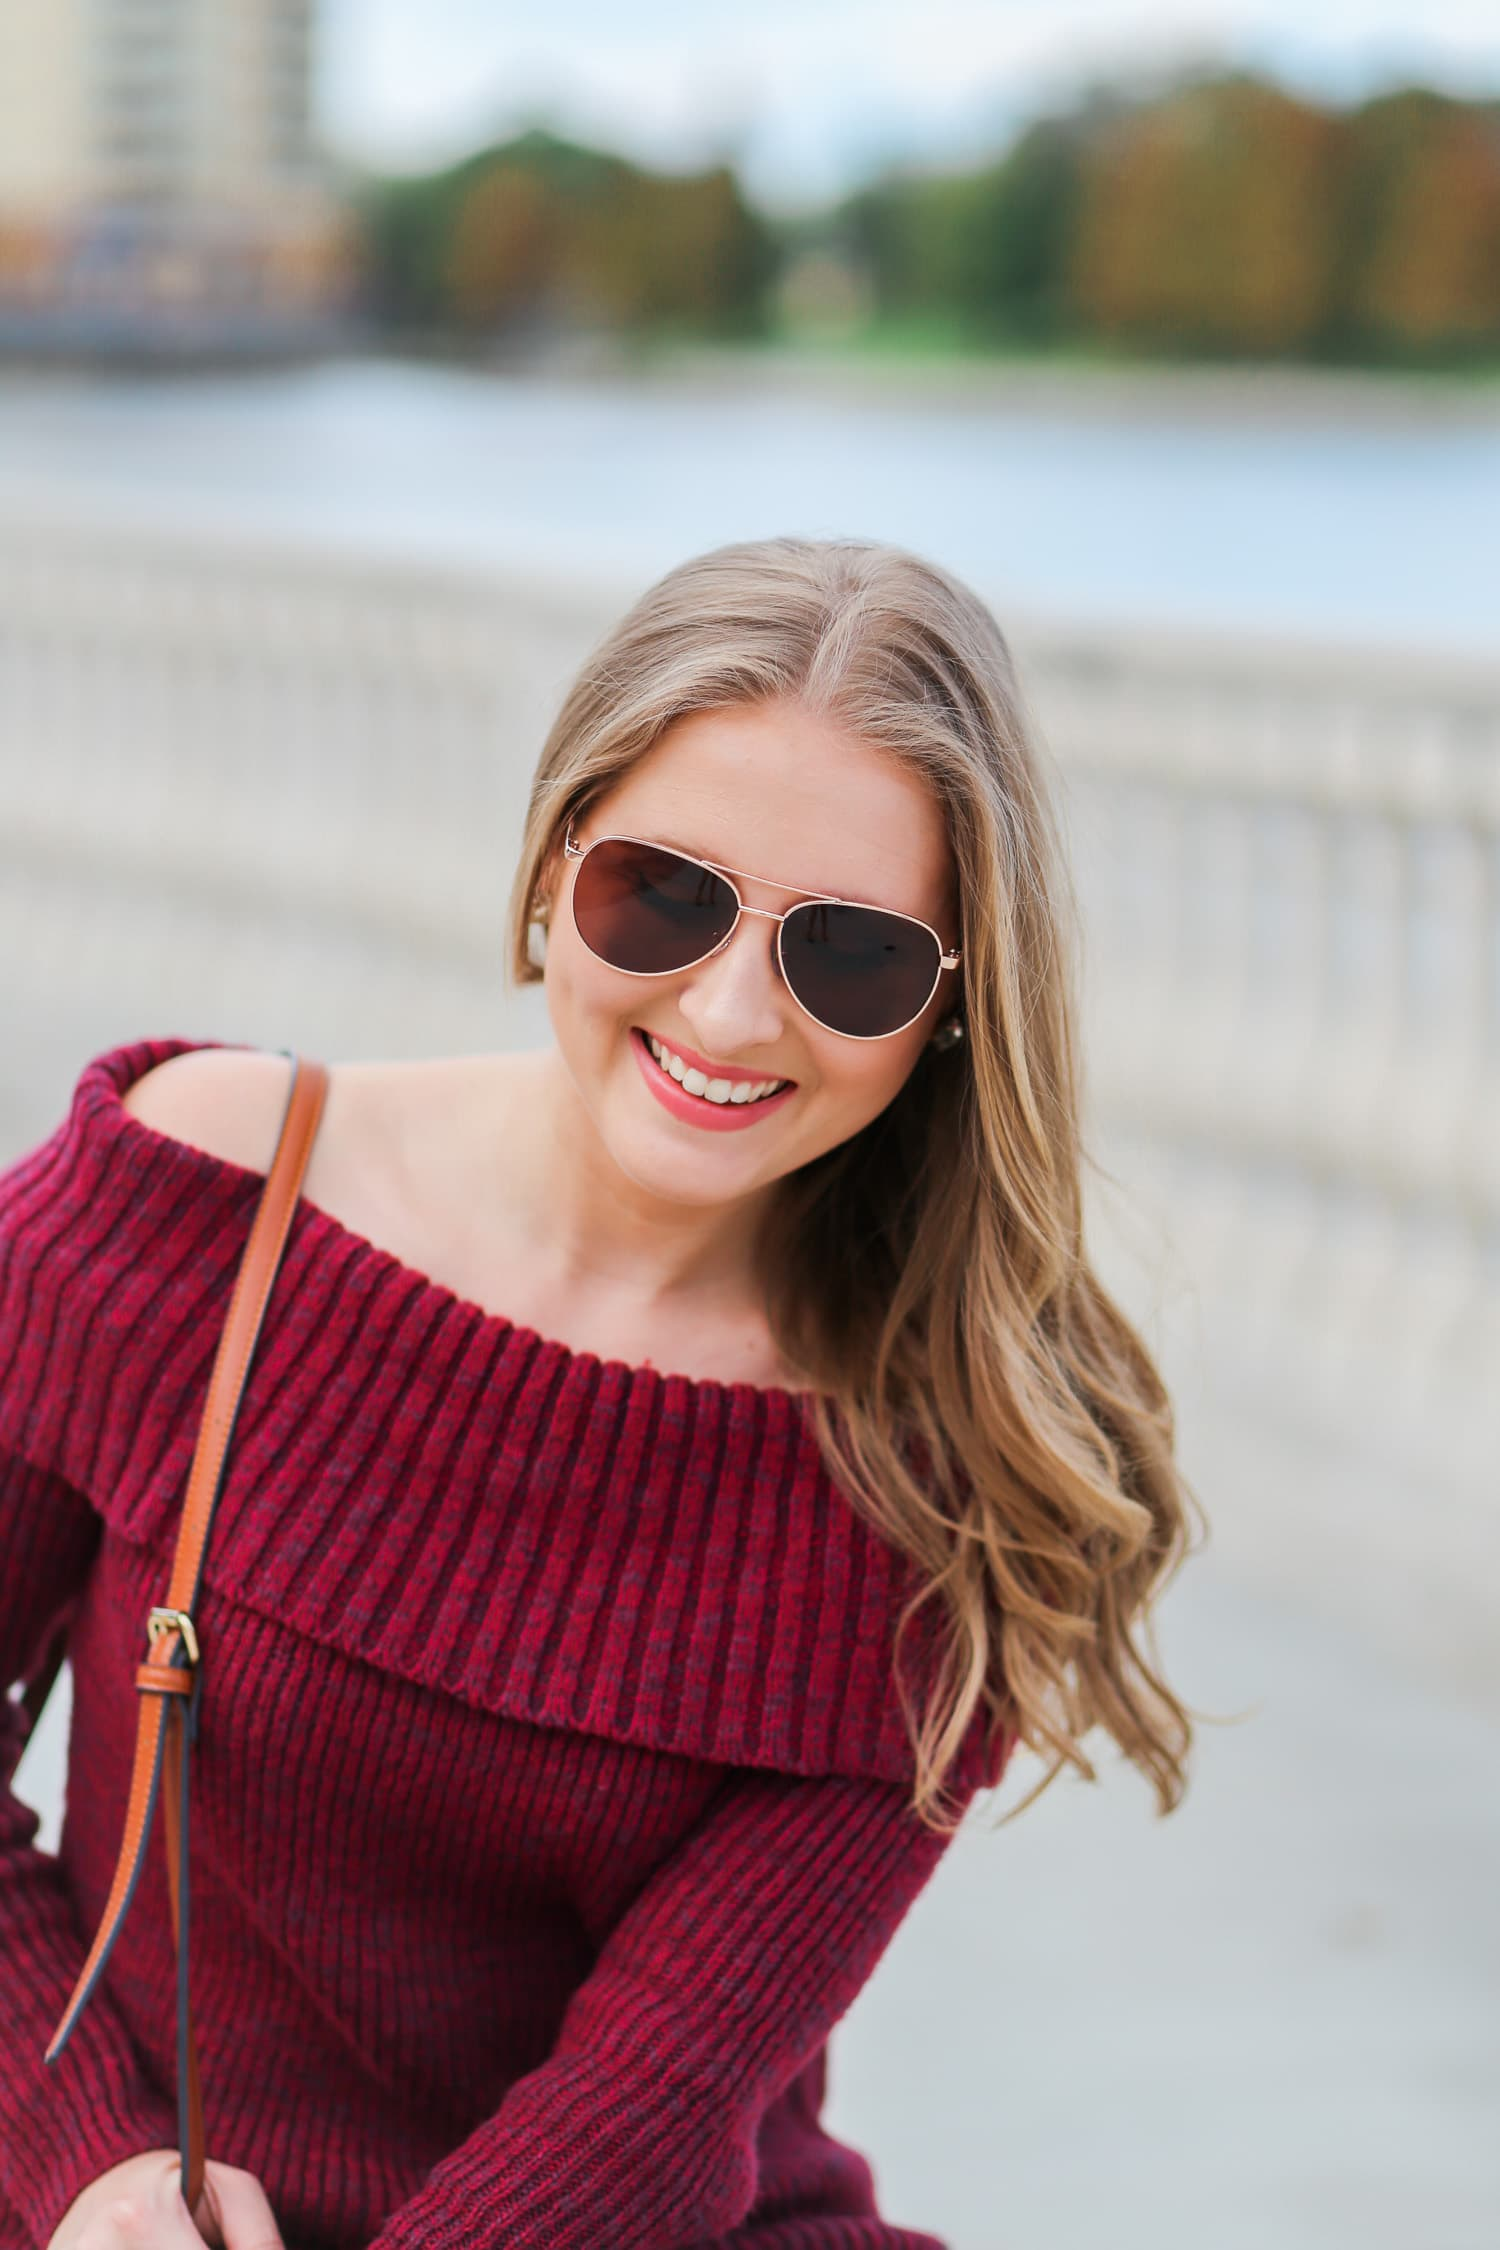 casual-winter-outfit-off-the-shoulder-sweater-gray-jeggins-moto-boots-foster-grant-rose-gold-aviator-sunglasses-7725-3